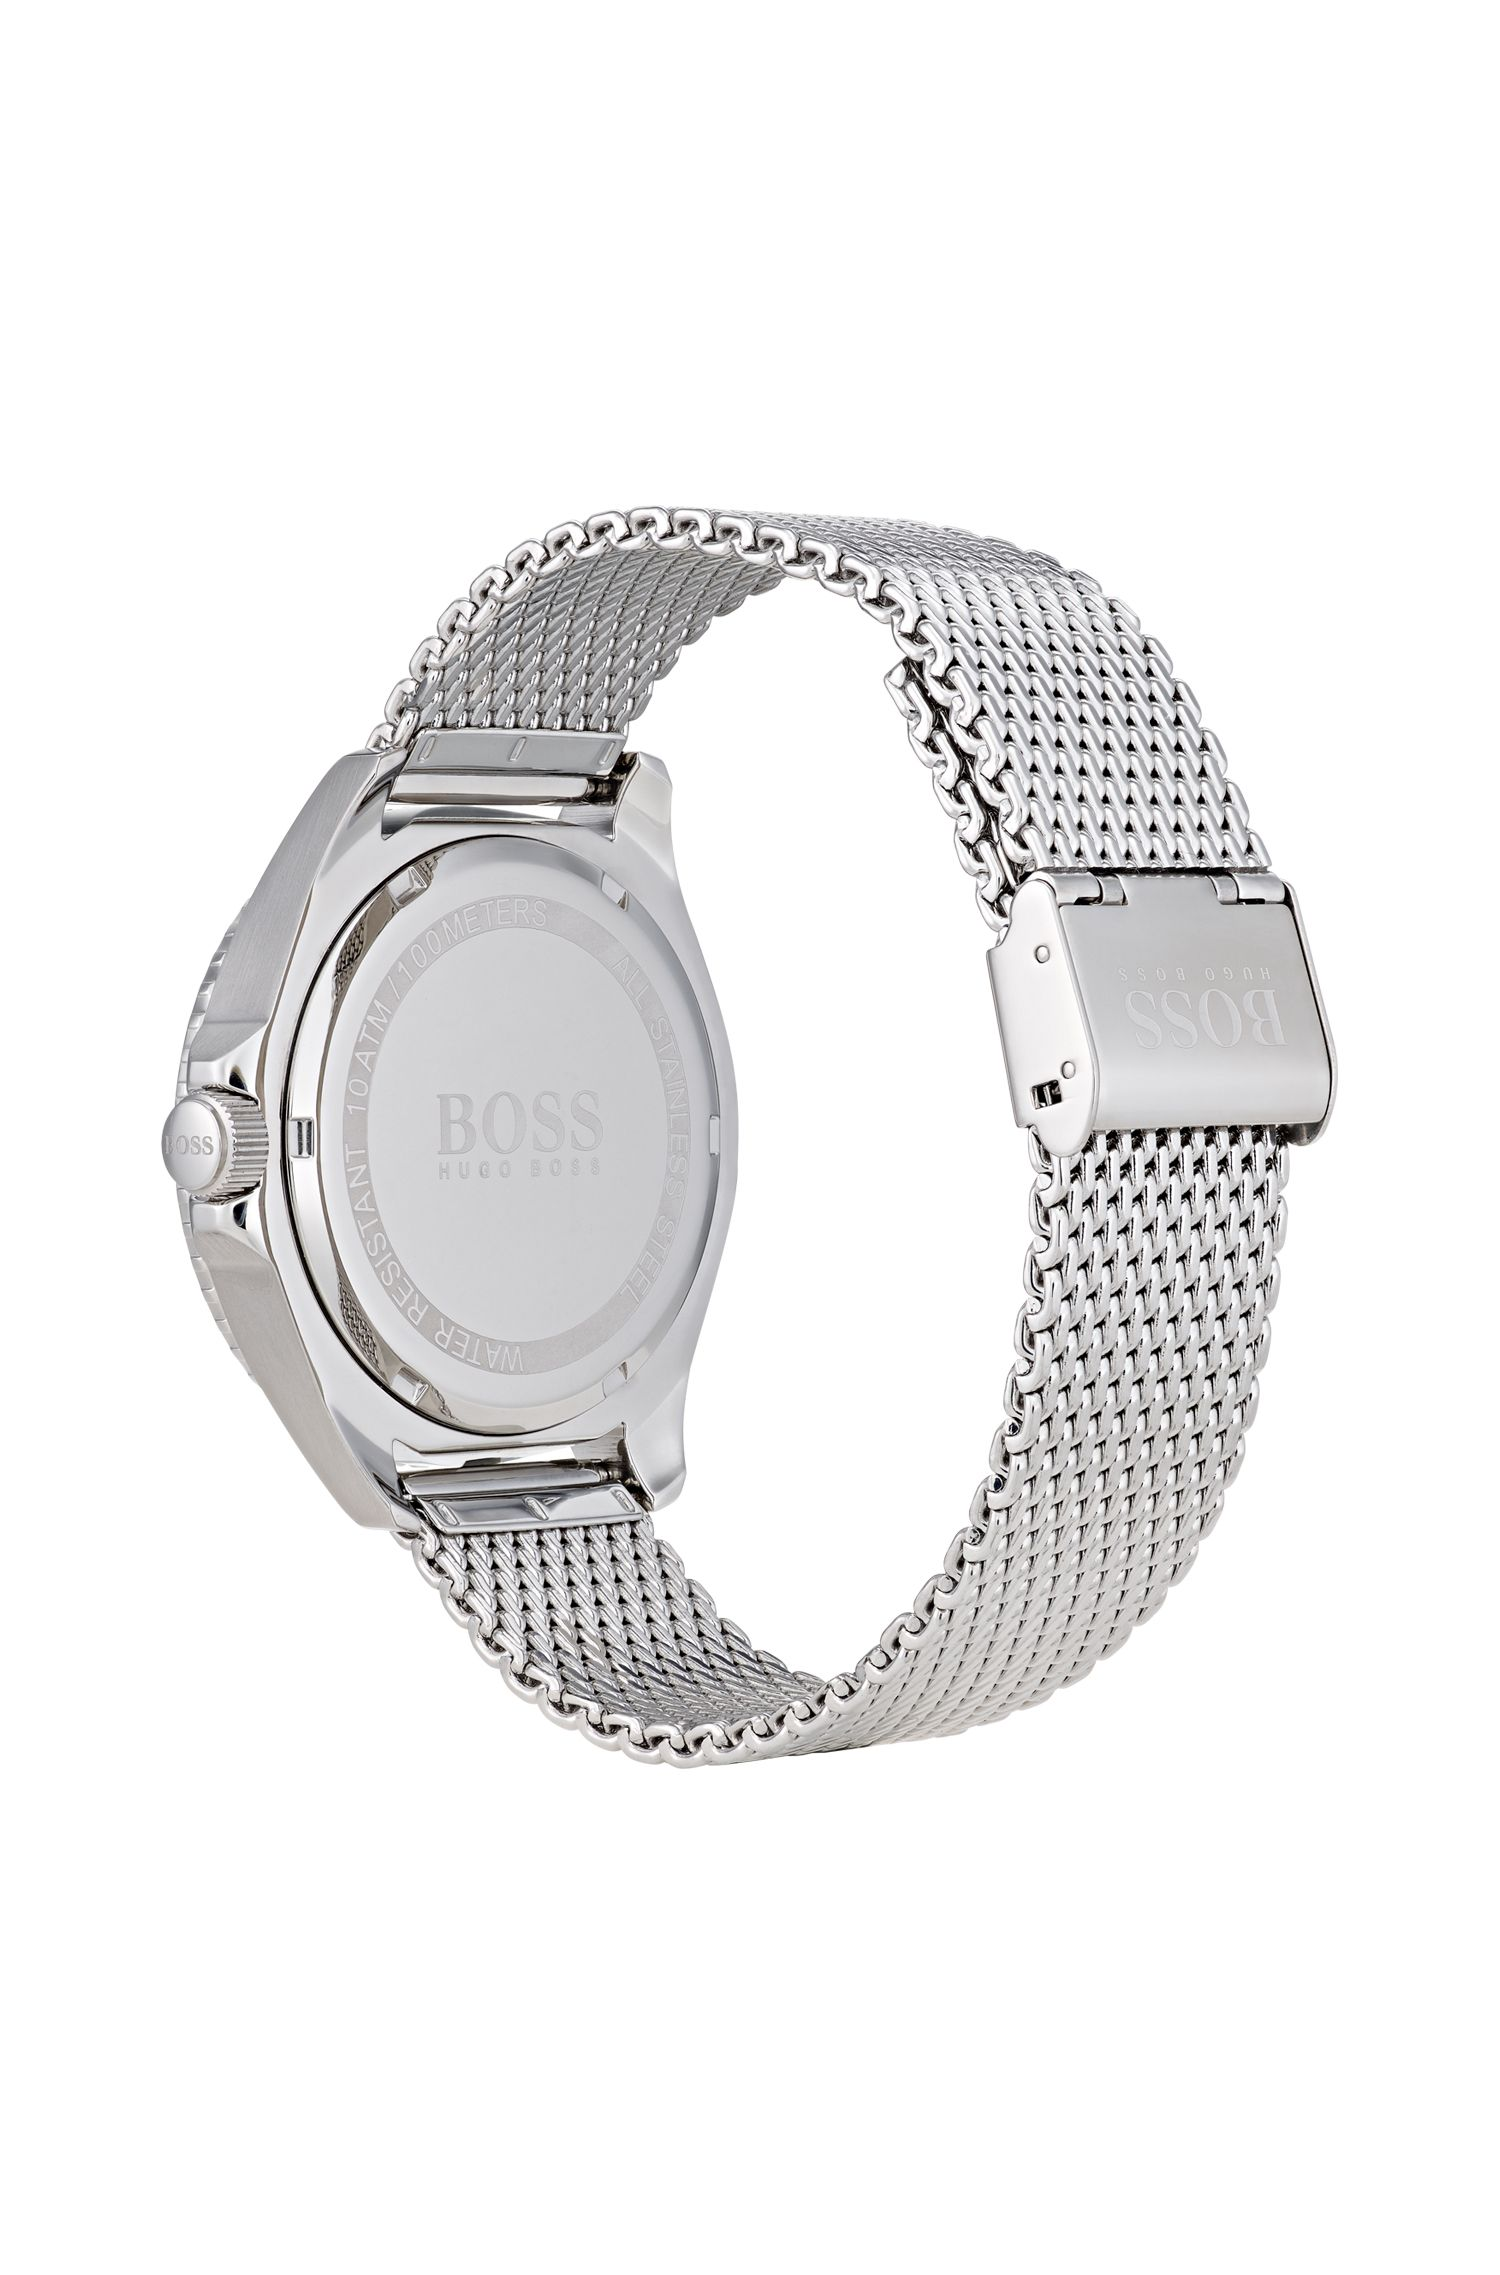 Stainless-steel watch with rotating bezel, luminova details and mesh bracelet